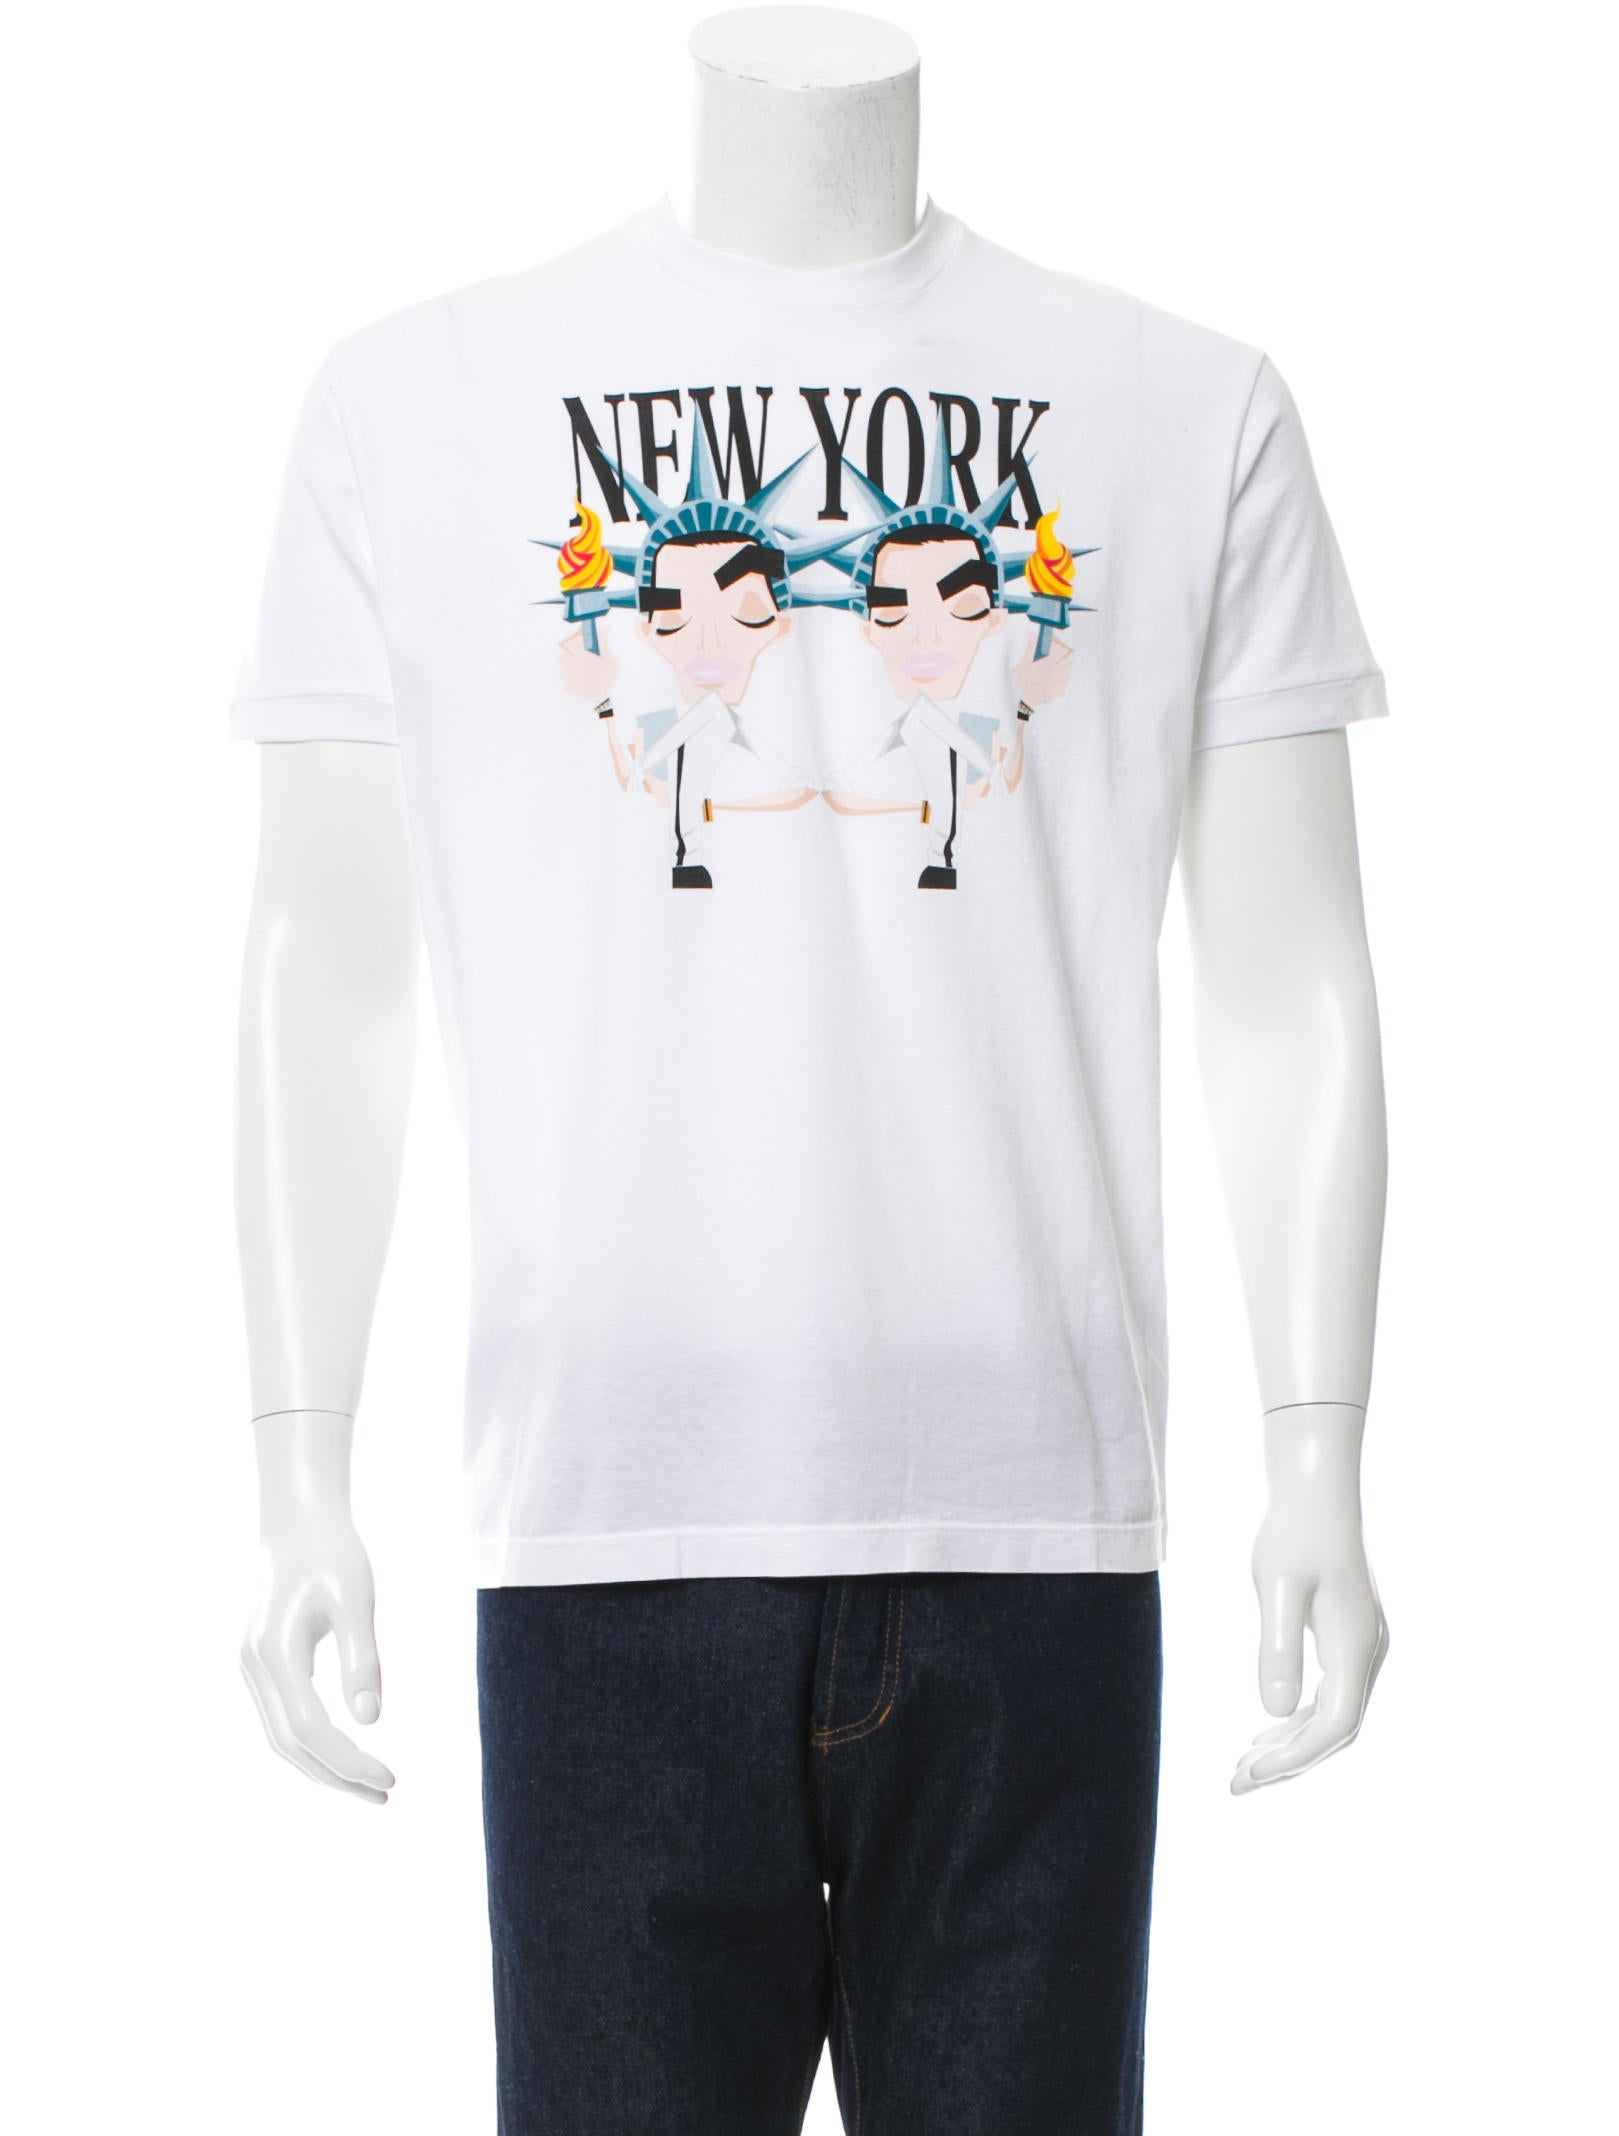 Dsquared new york graphic print t shirt clothing for New york printed t shirts